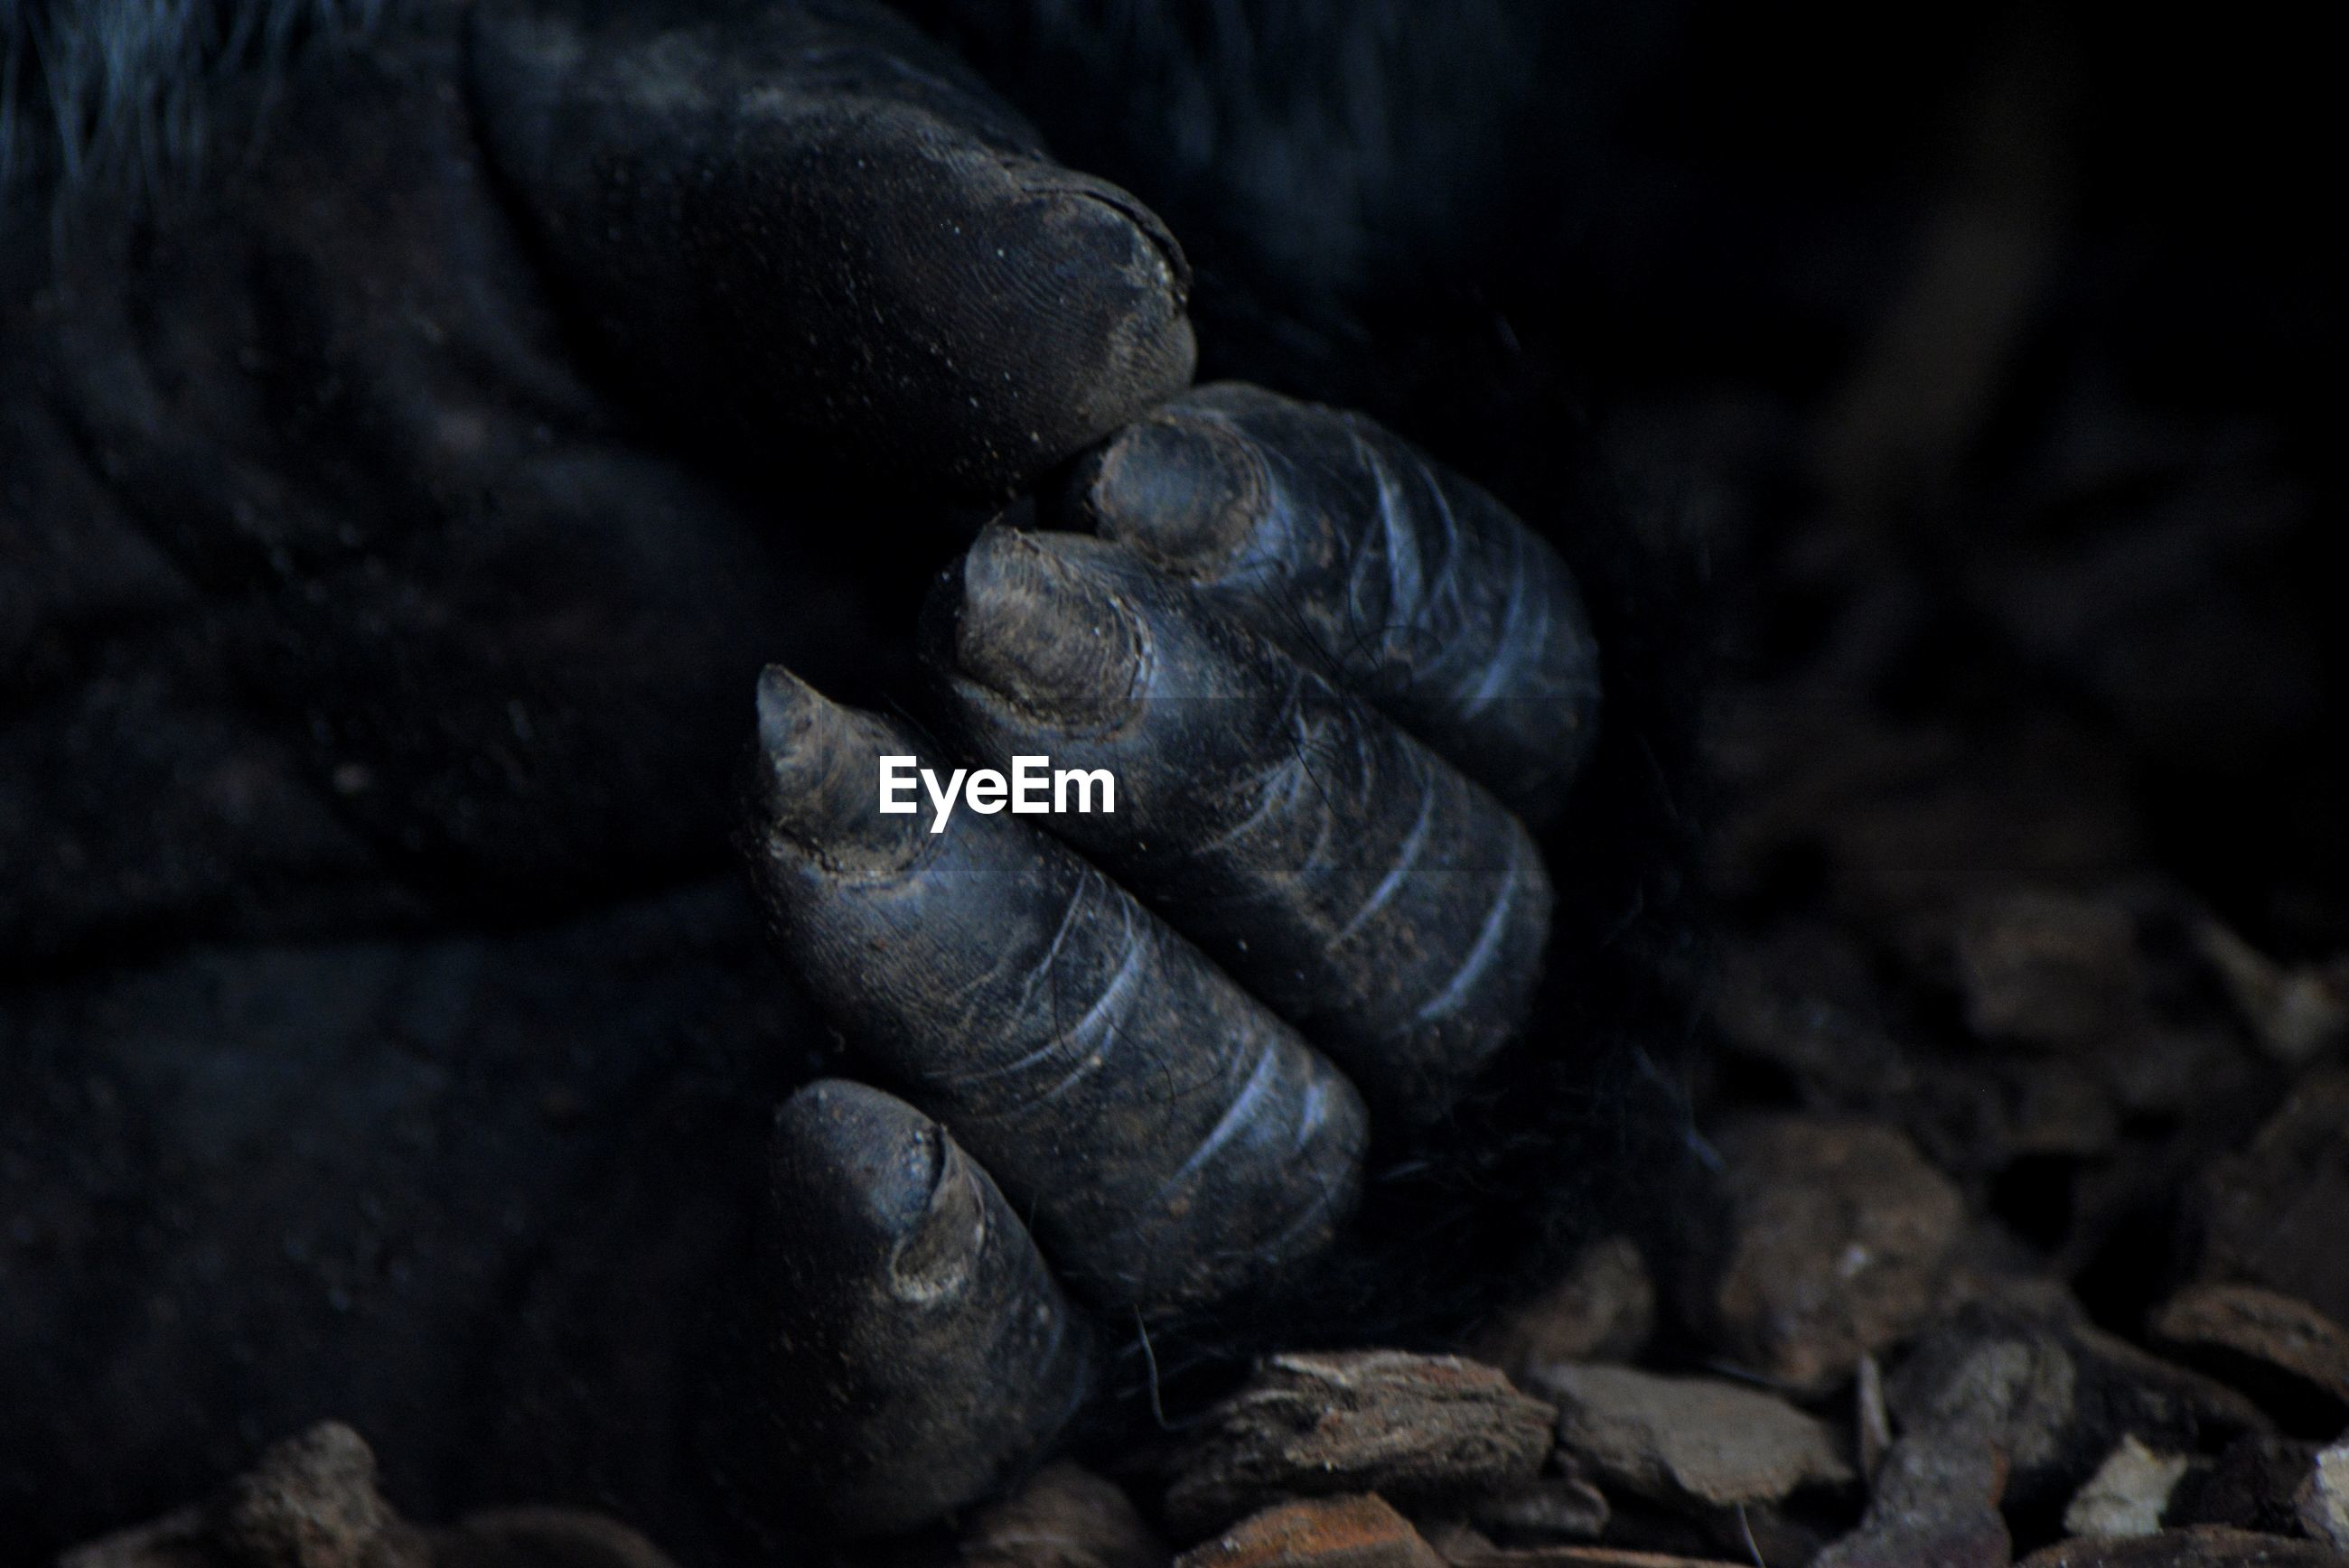 Cropped image of gorilla hand on stones